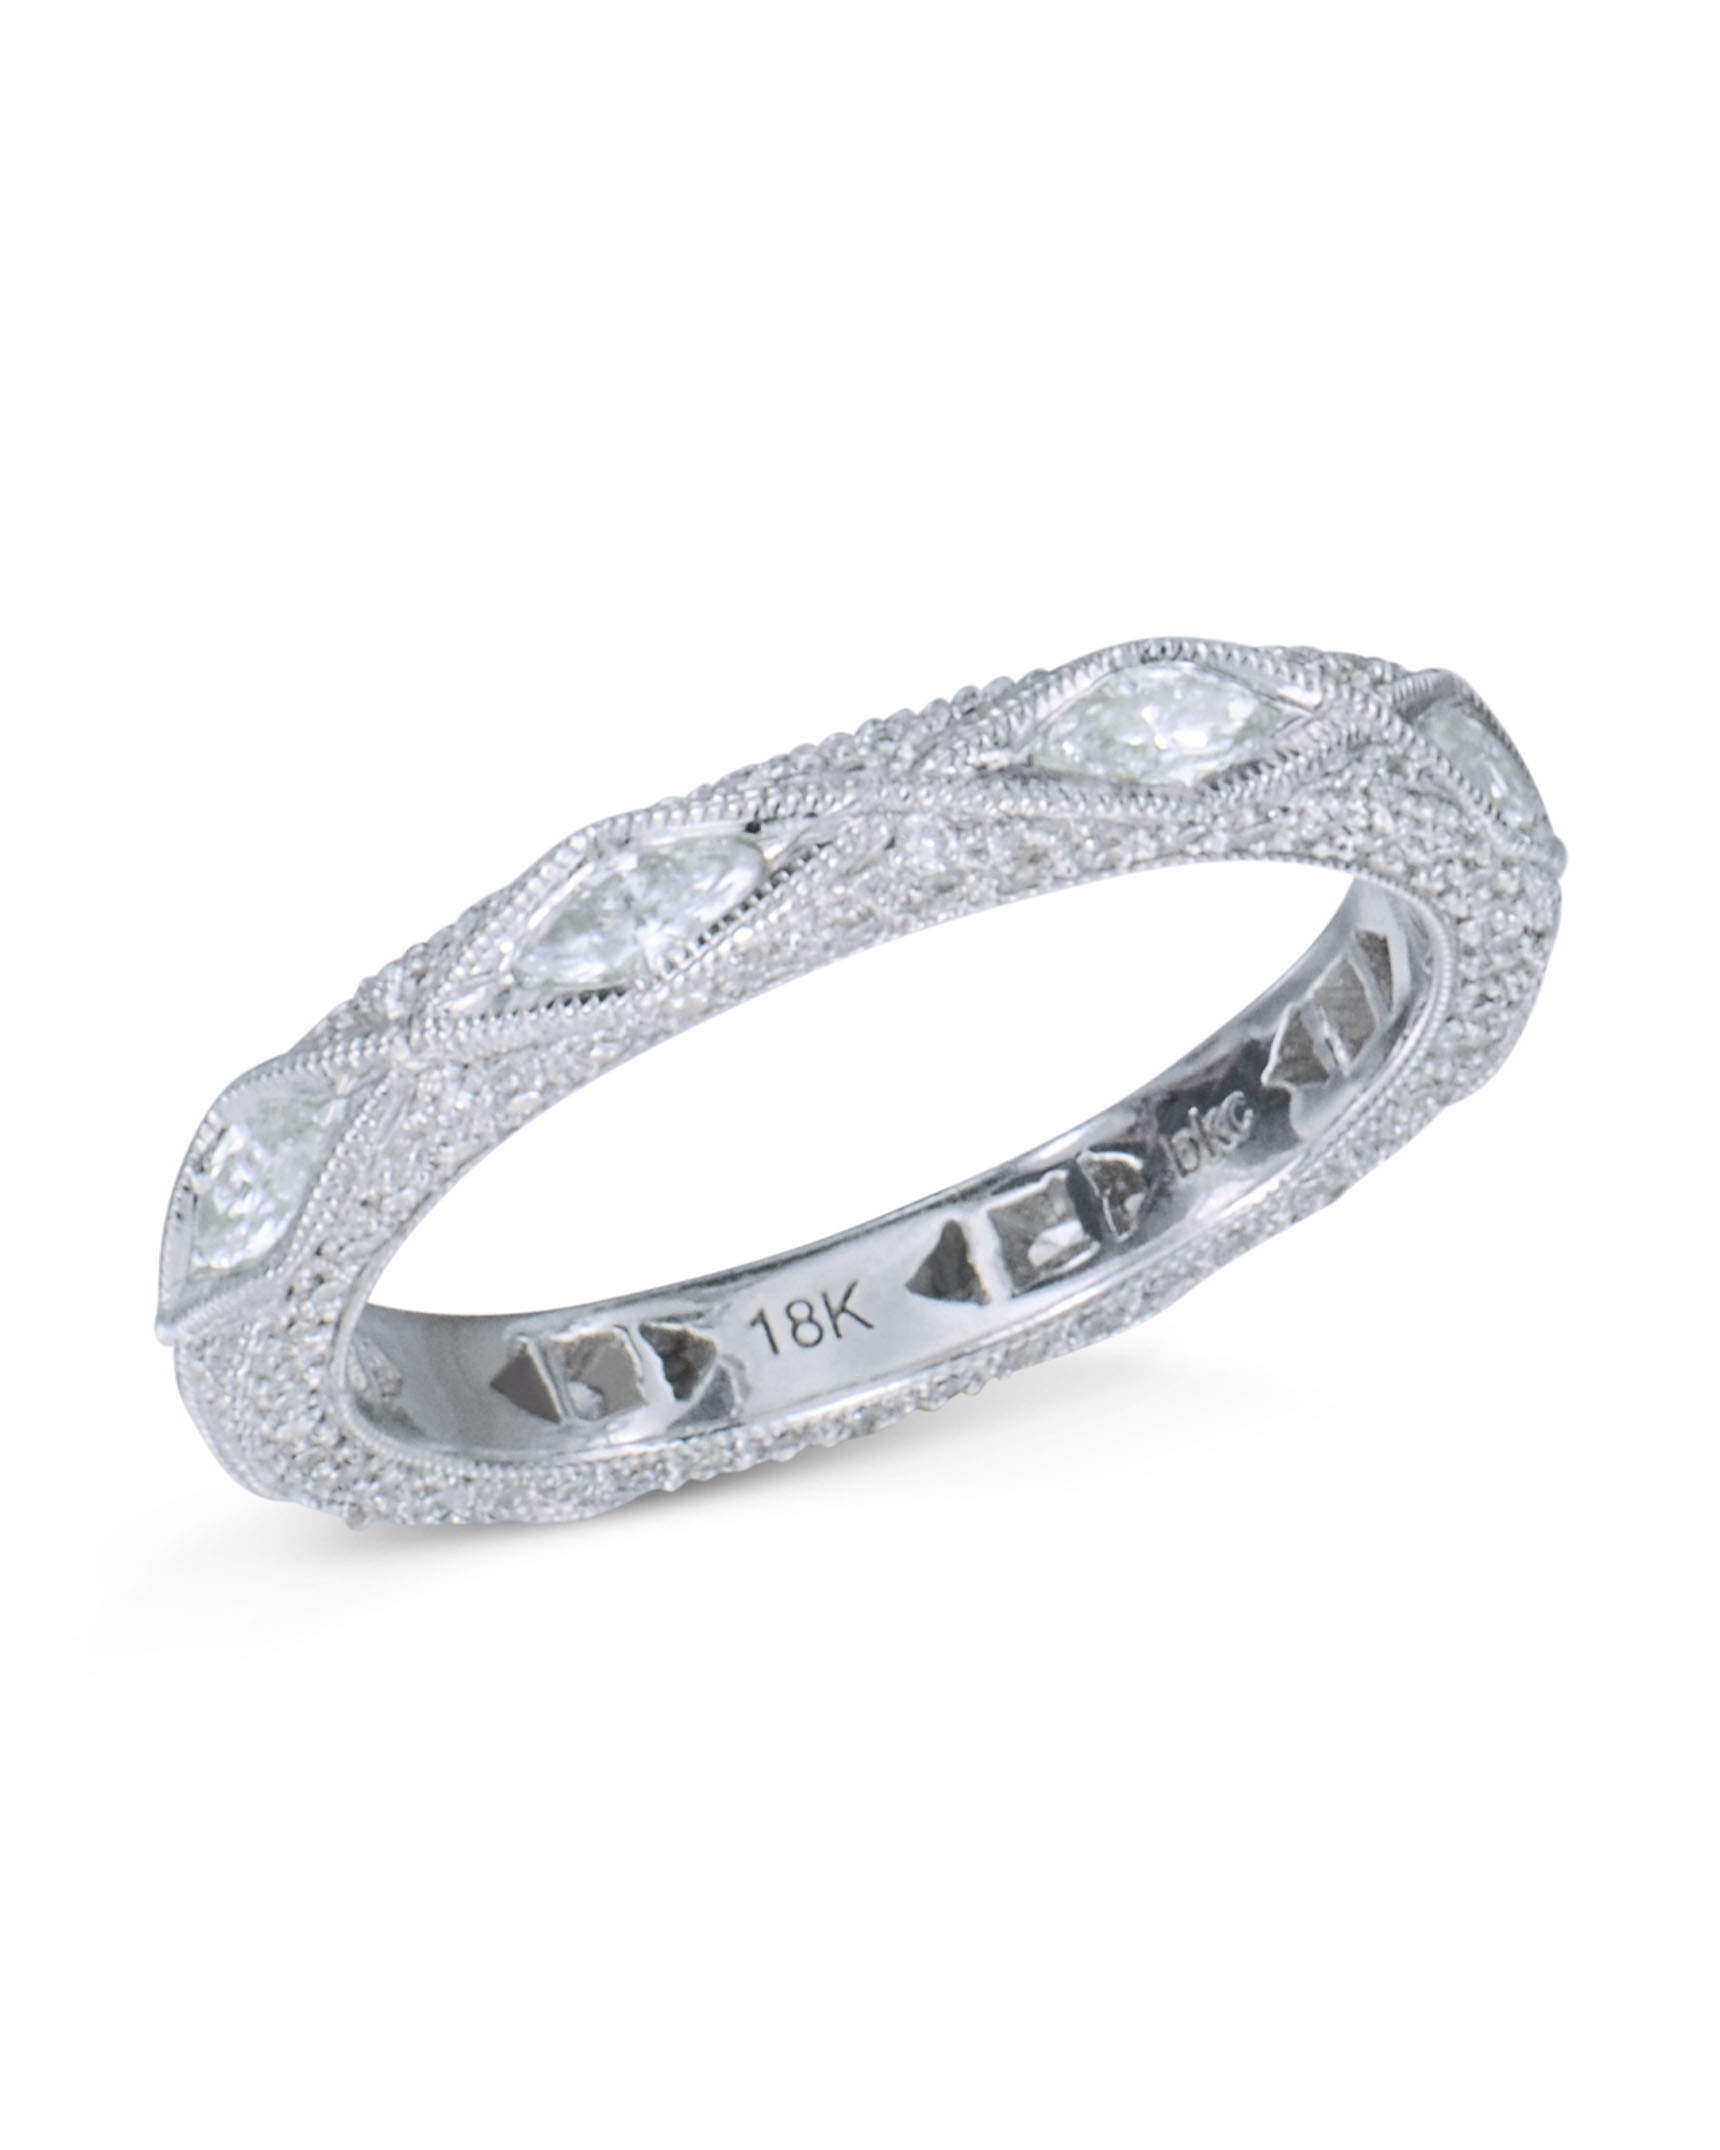 rings wedding topic show engagement and band ring all eternity your bands together closed me